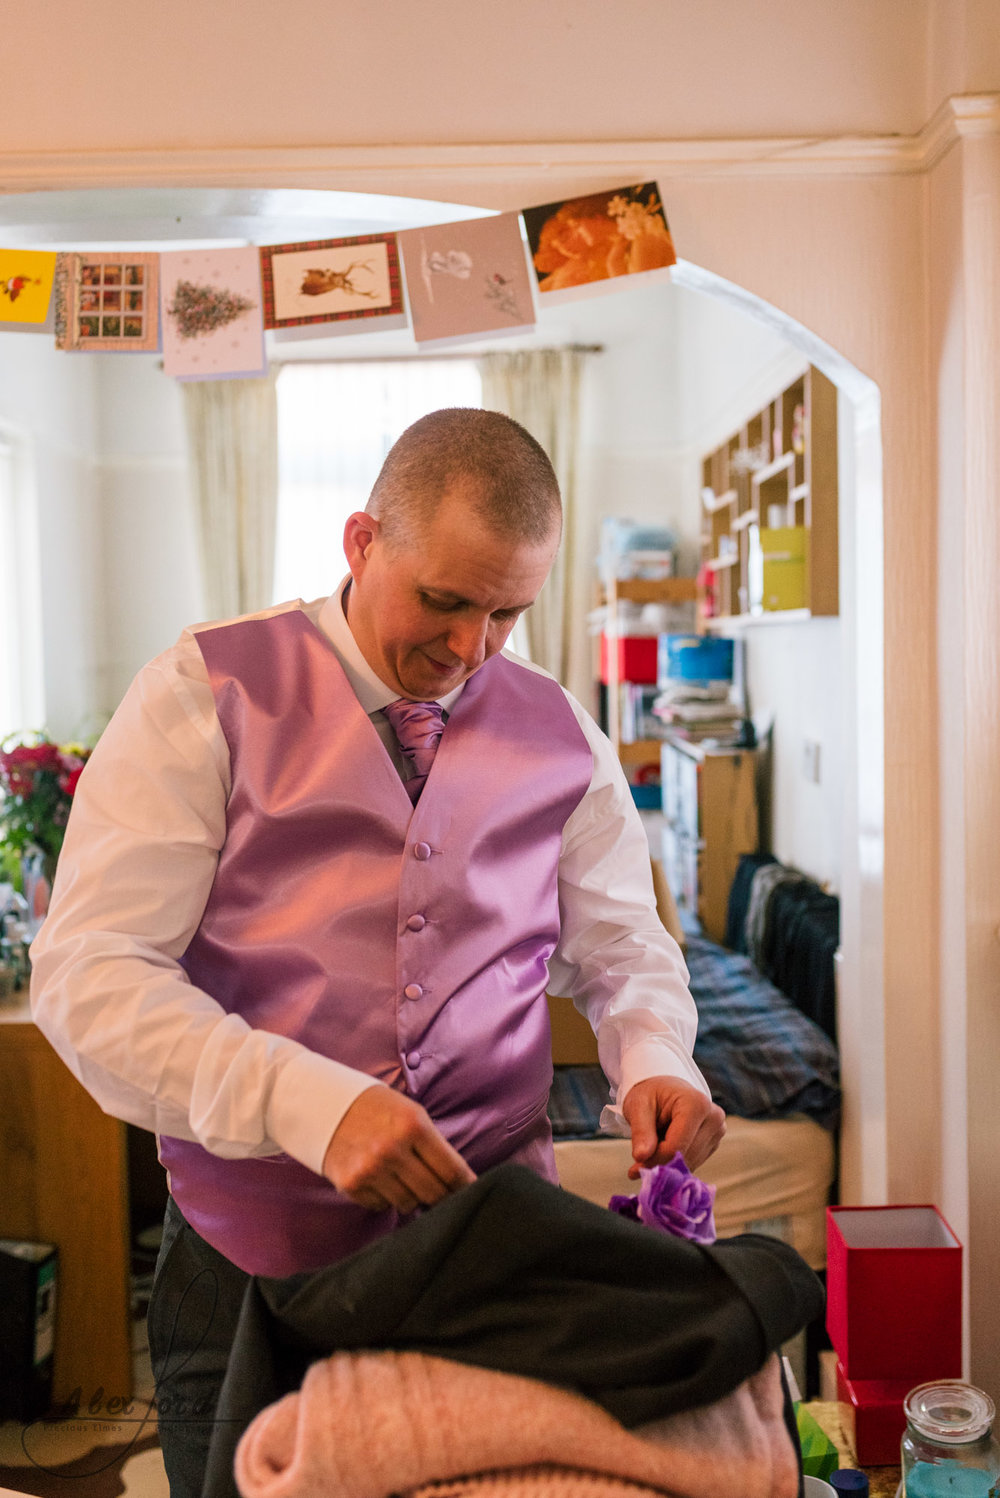 the best man make some finishing touches to his suit before him and the groom leave for the wedding ceremony in liverpool